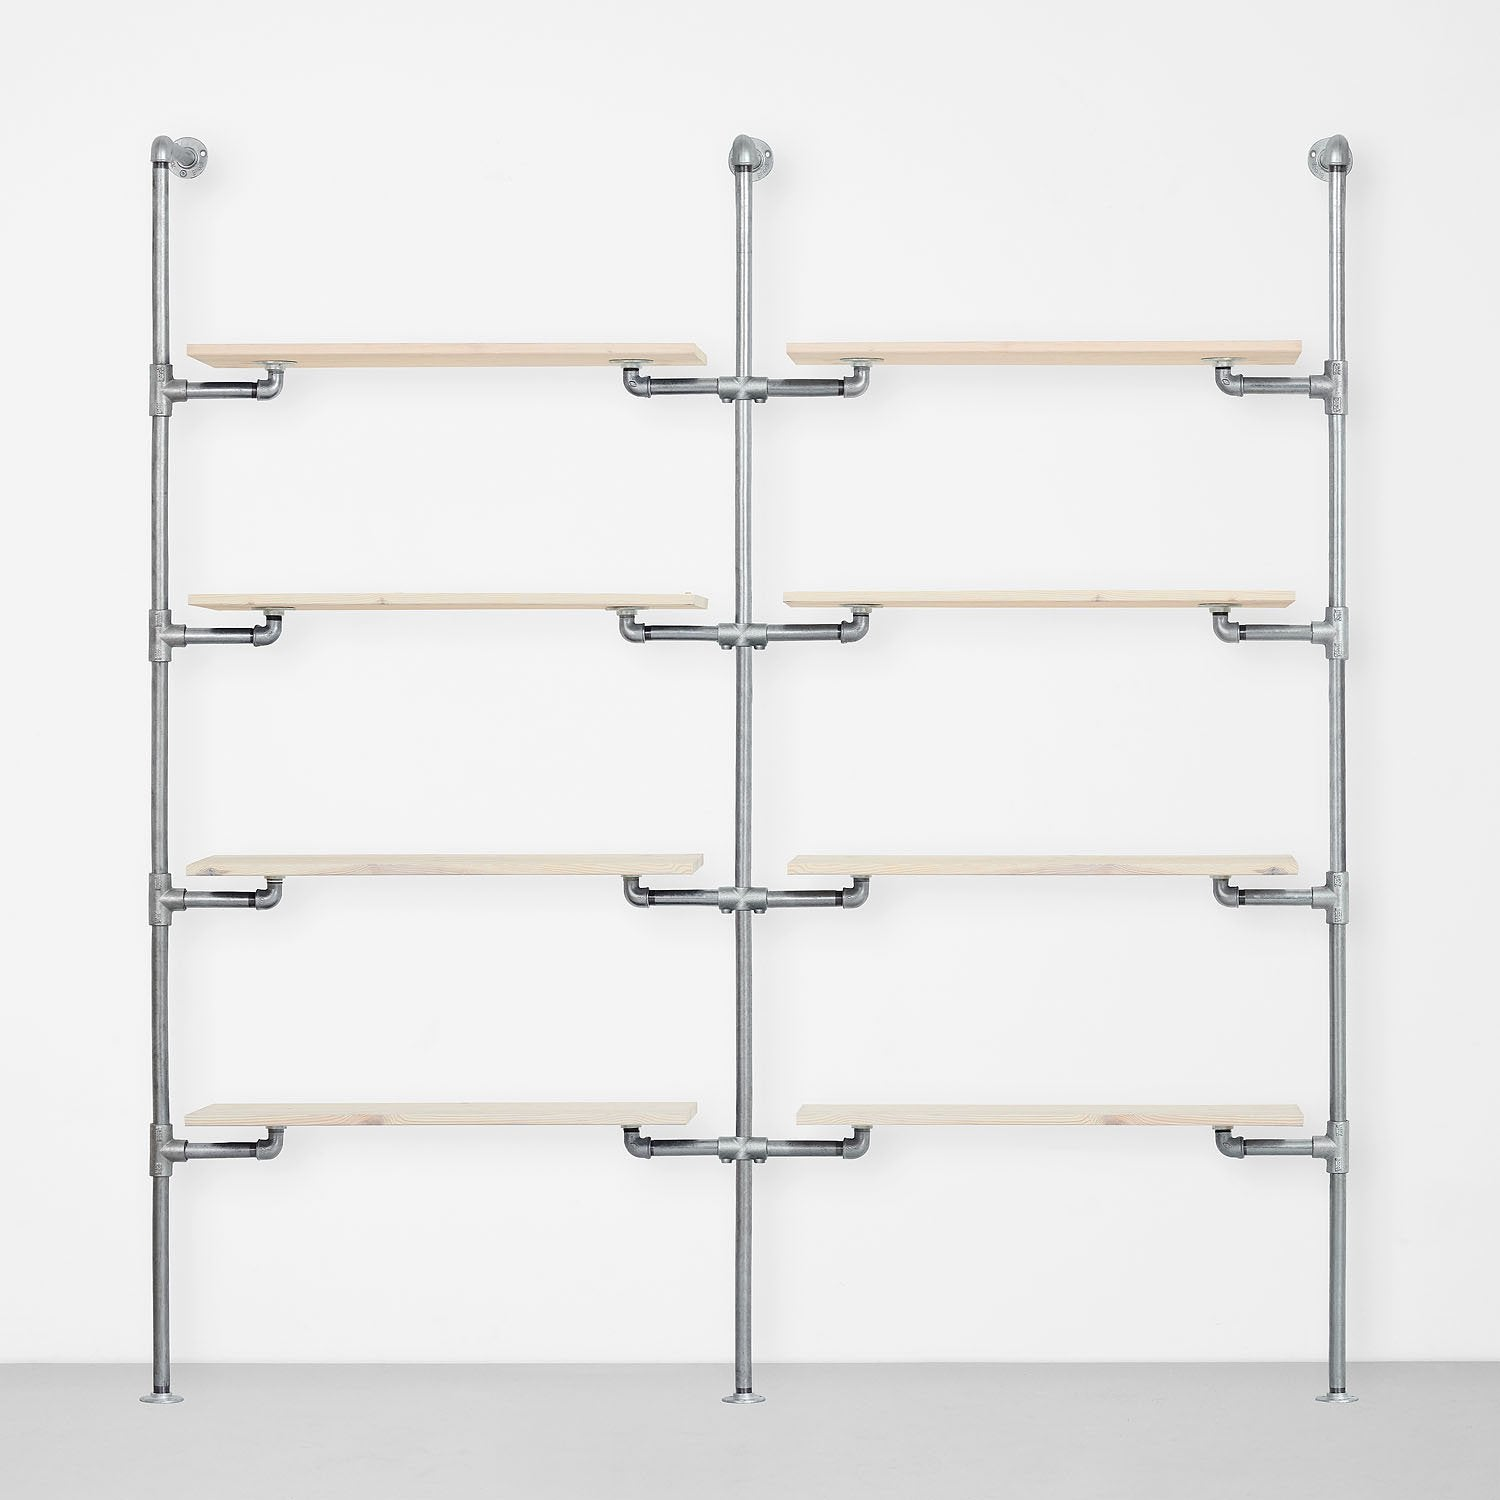 The Walk-In 2 row wardrobe system - (4 shelves / 4 shelves)